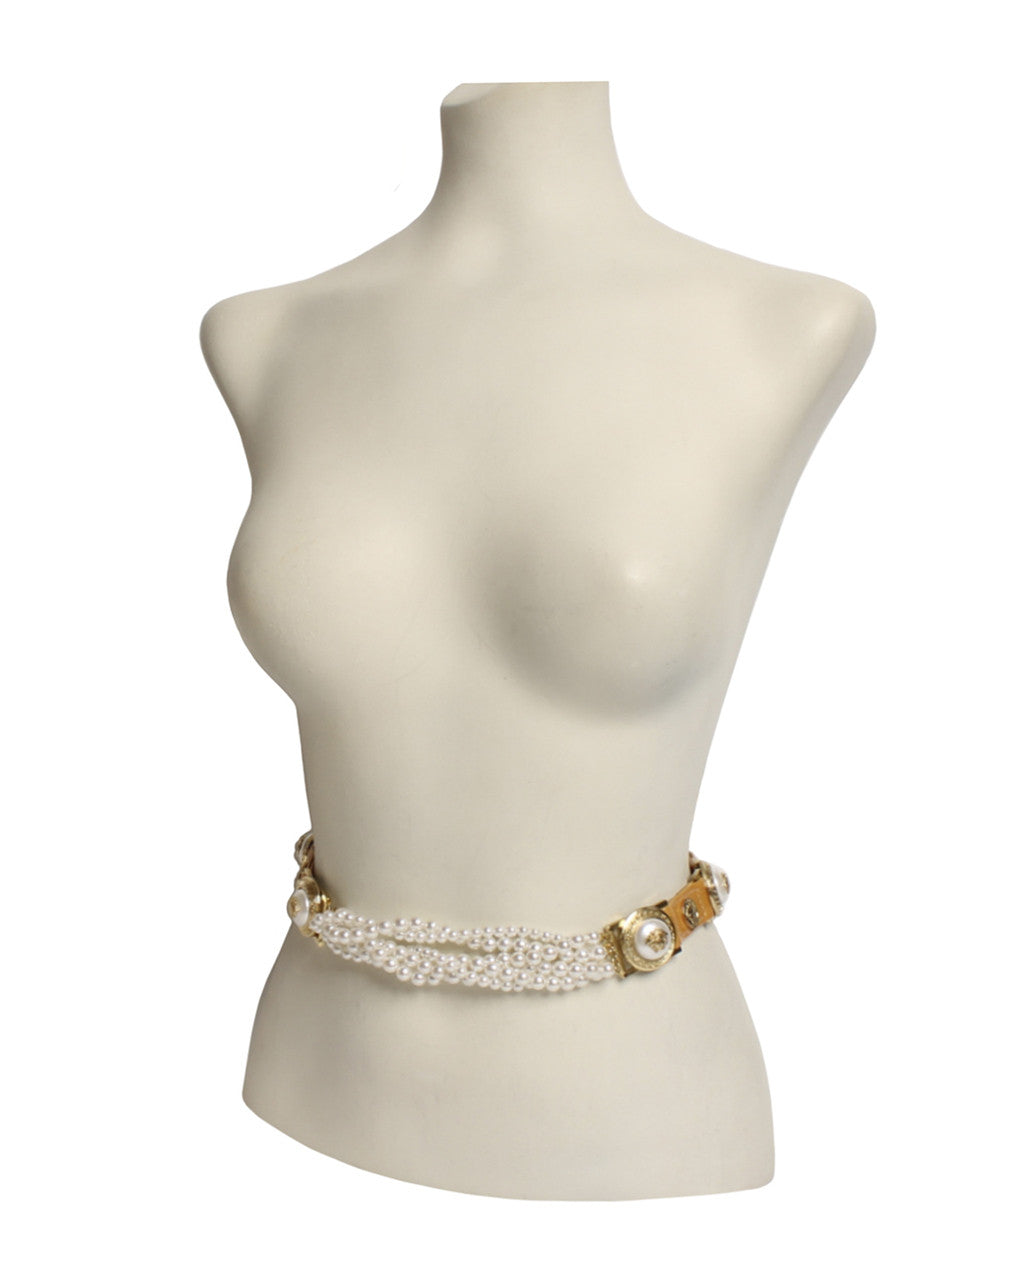 Gianni Versace 1990s Pearl Snap Belt